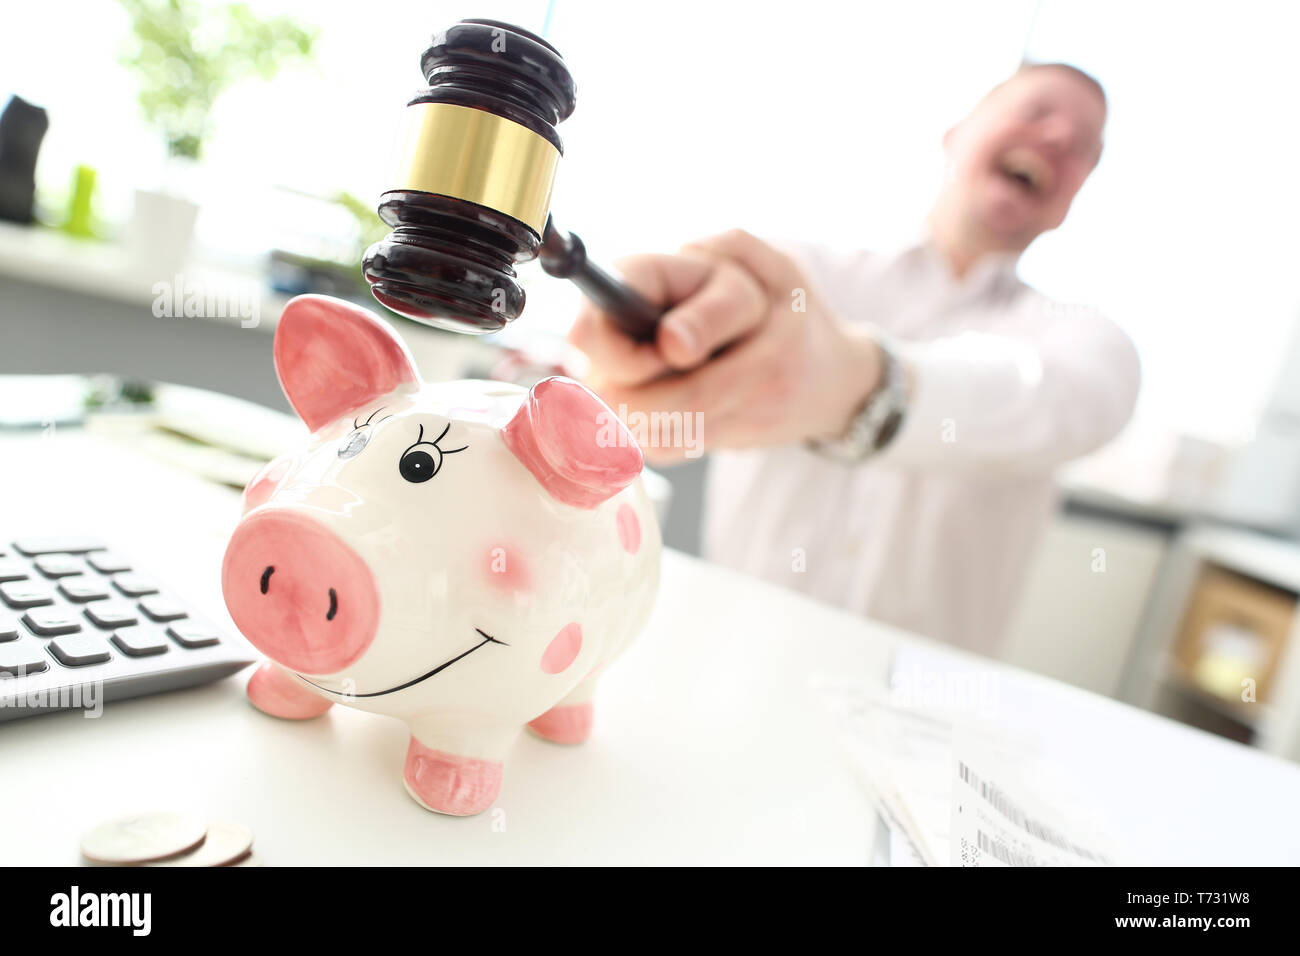 Crazy man with mallet trying to break funny piggybank - Stock Image